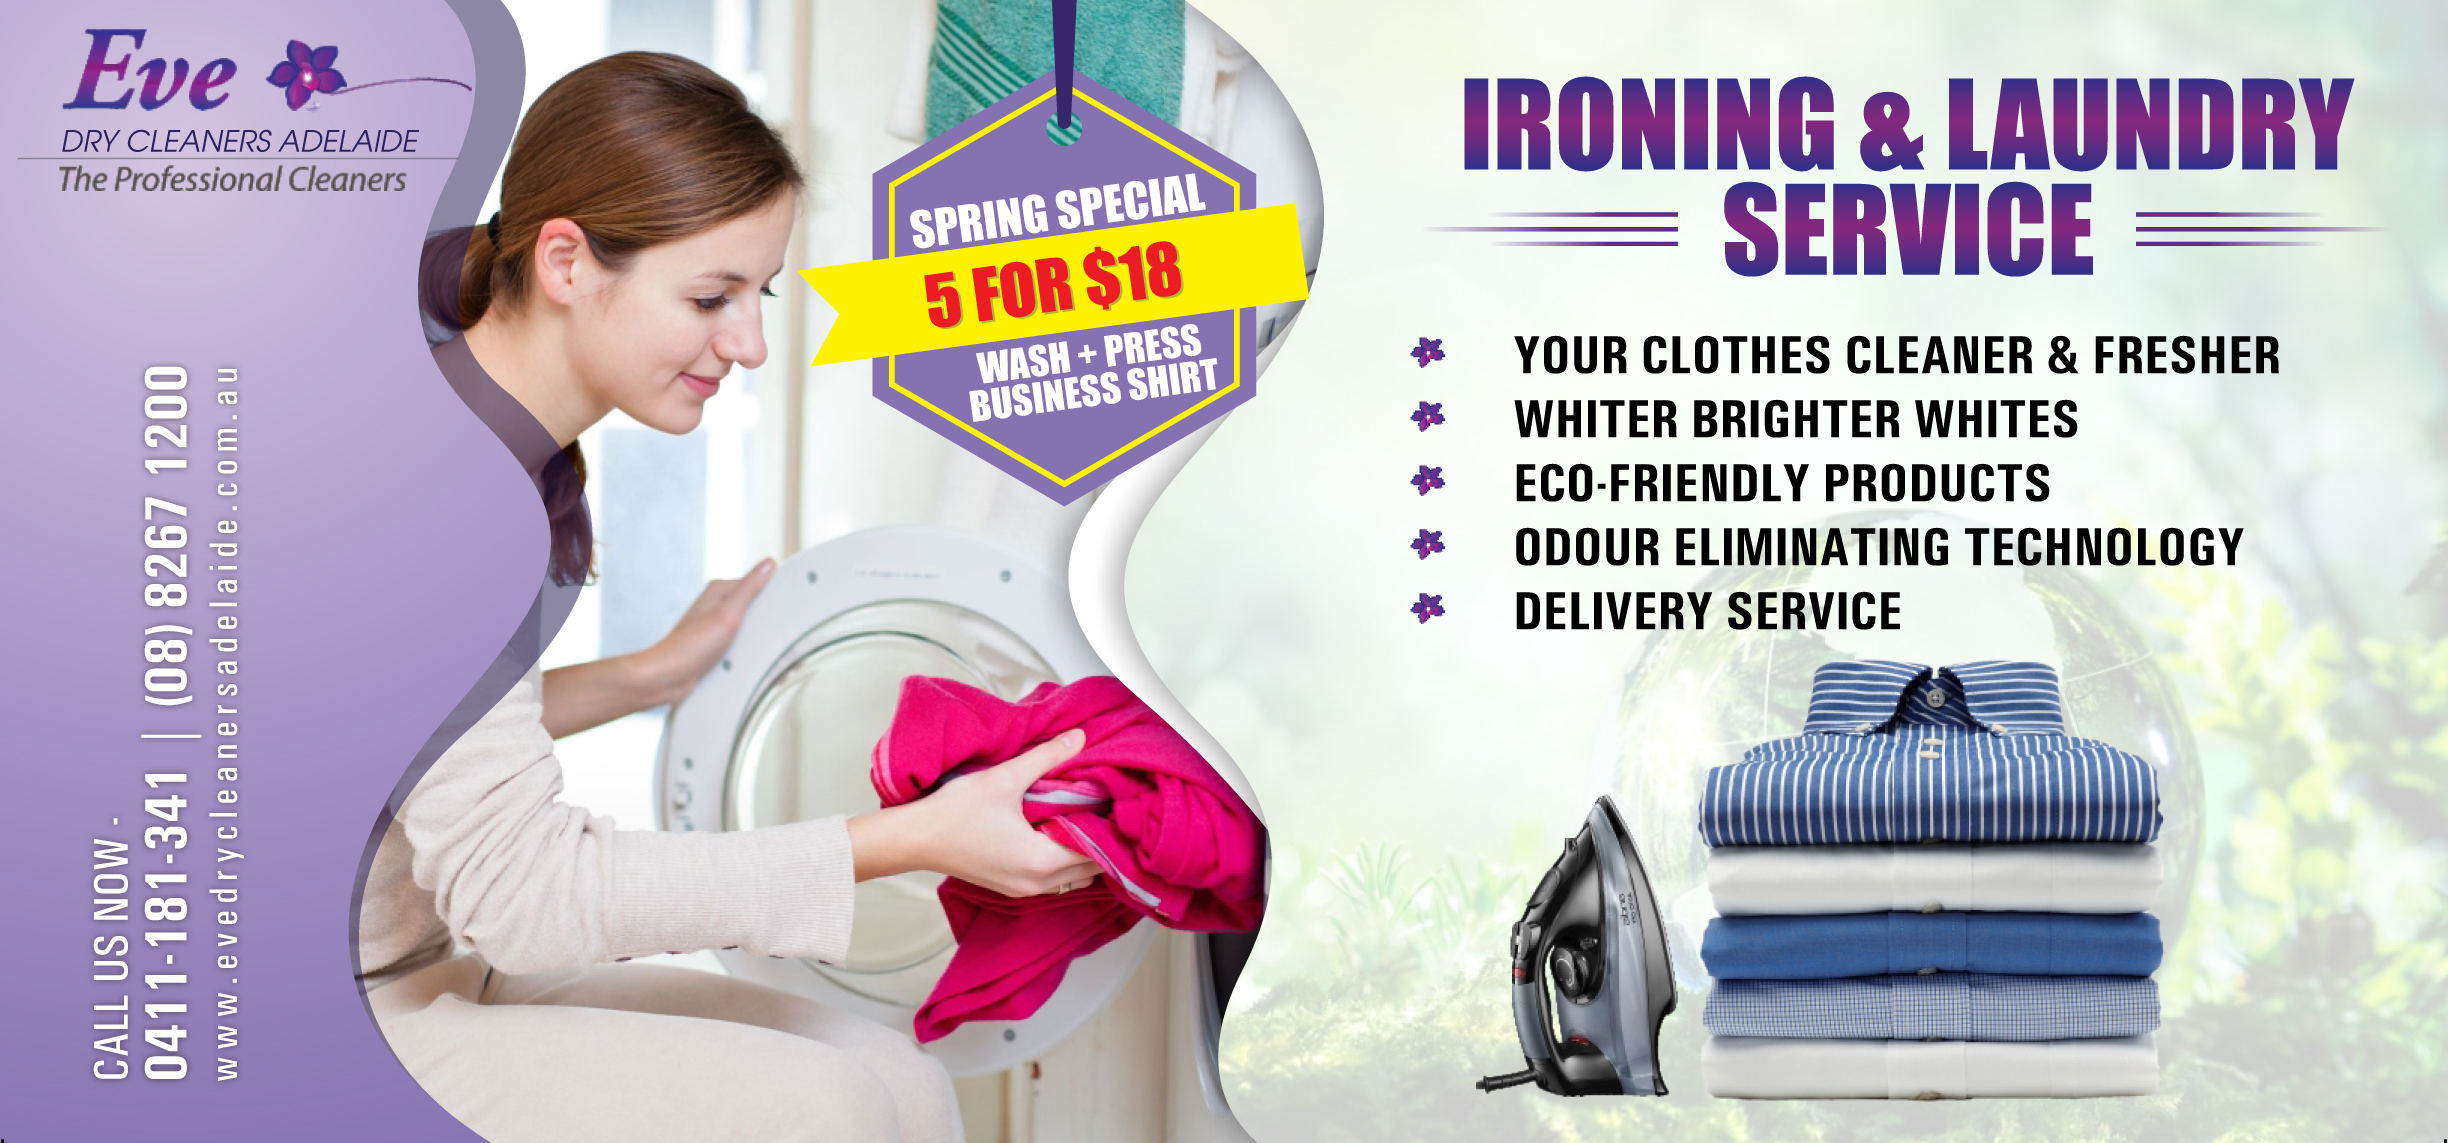 washing and ironing special